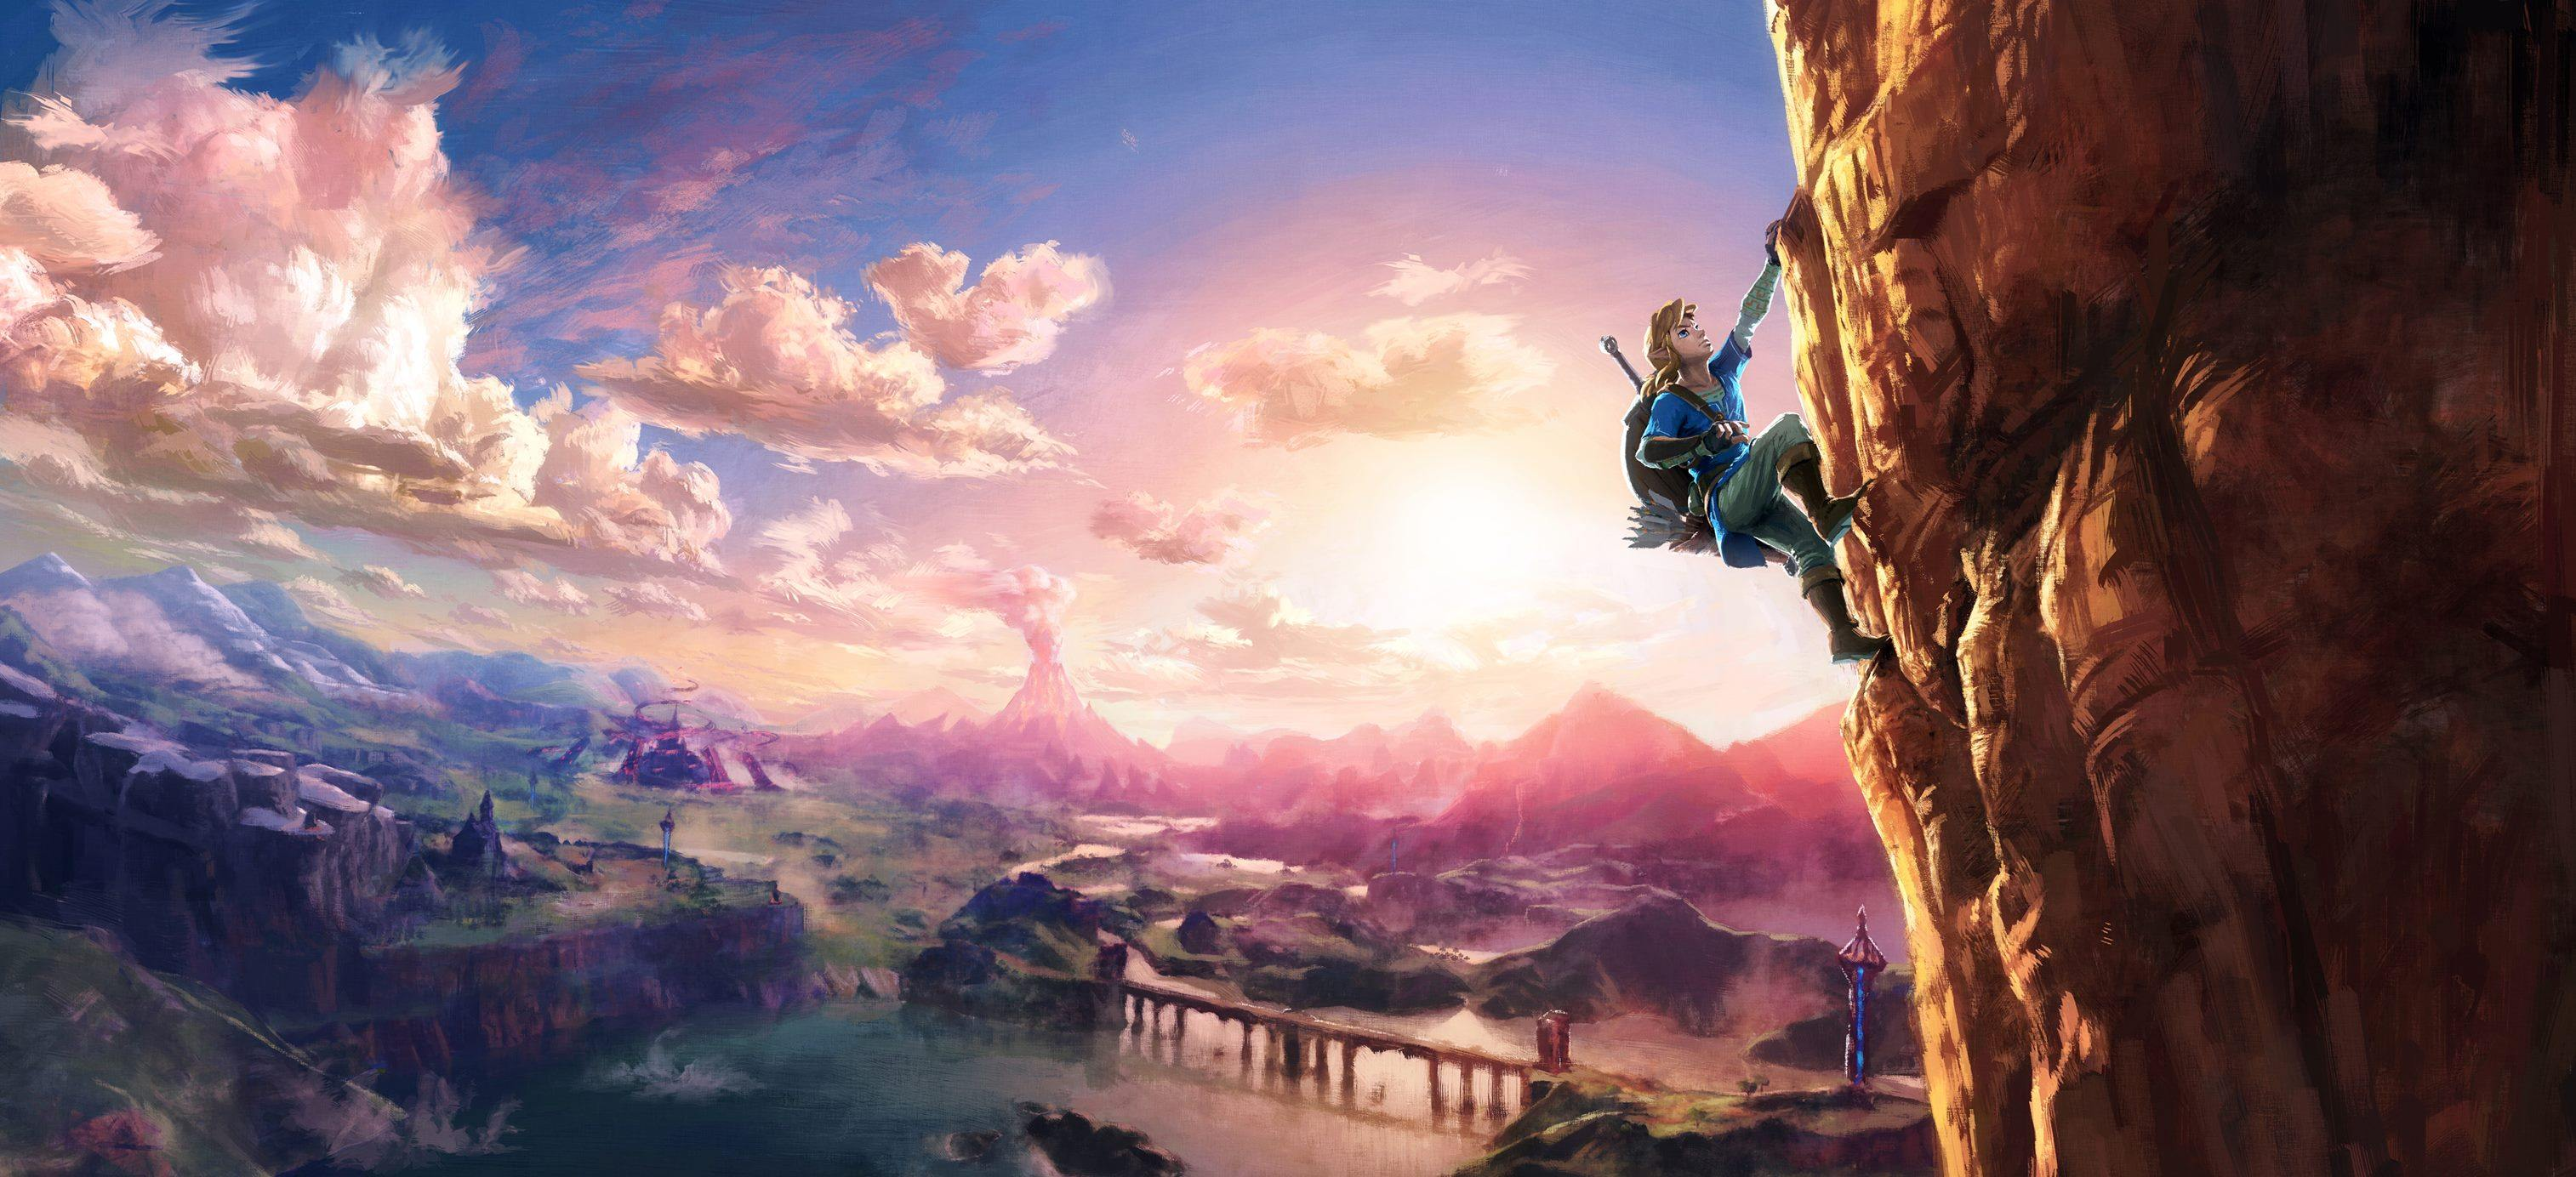 The Legend of Zelda Symphony is coming to Vancouver